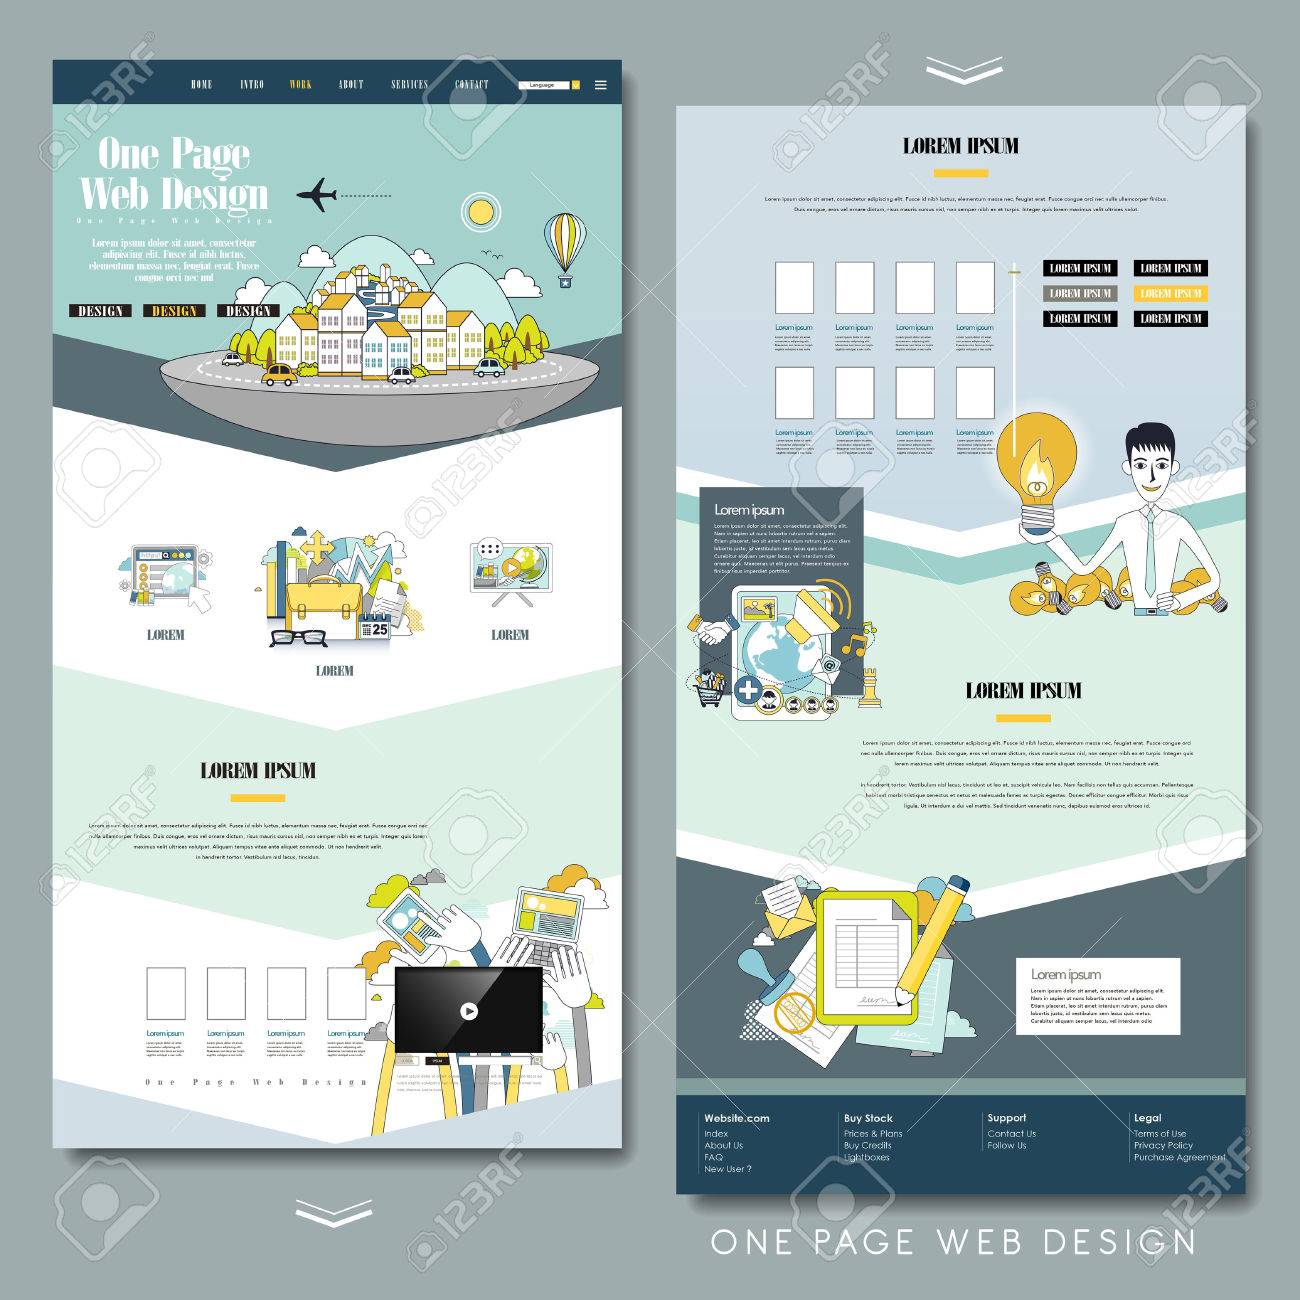 Lovely One Page Website Design Template In Flat Style Royalty Free ...